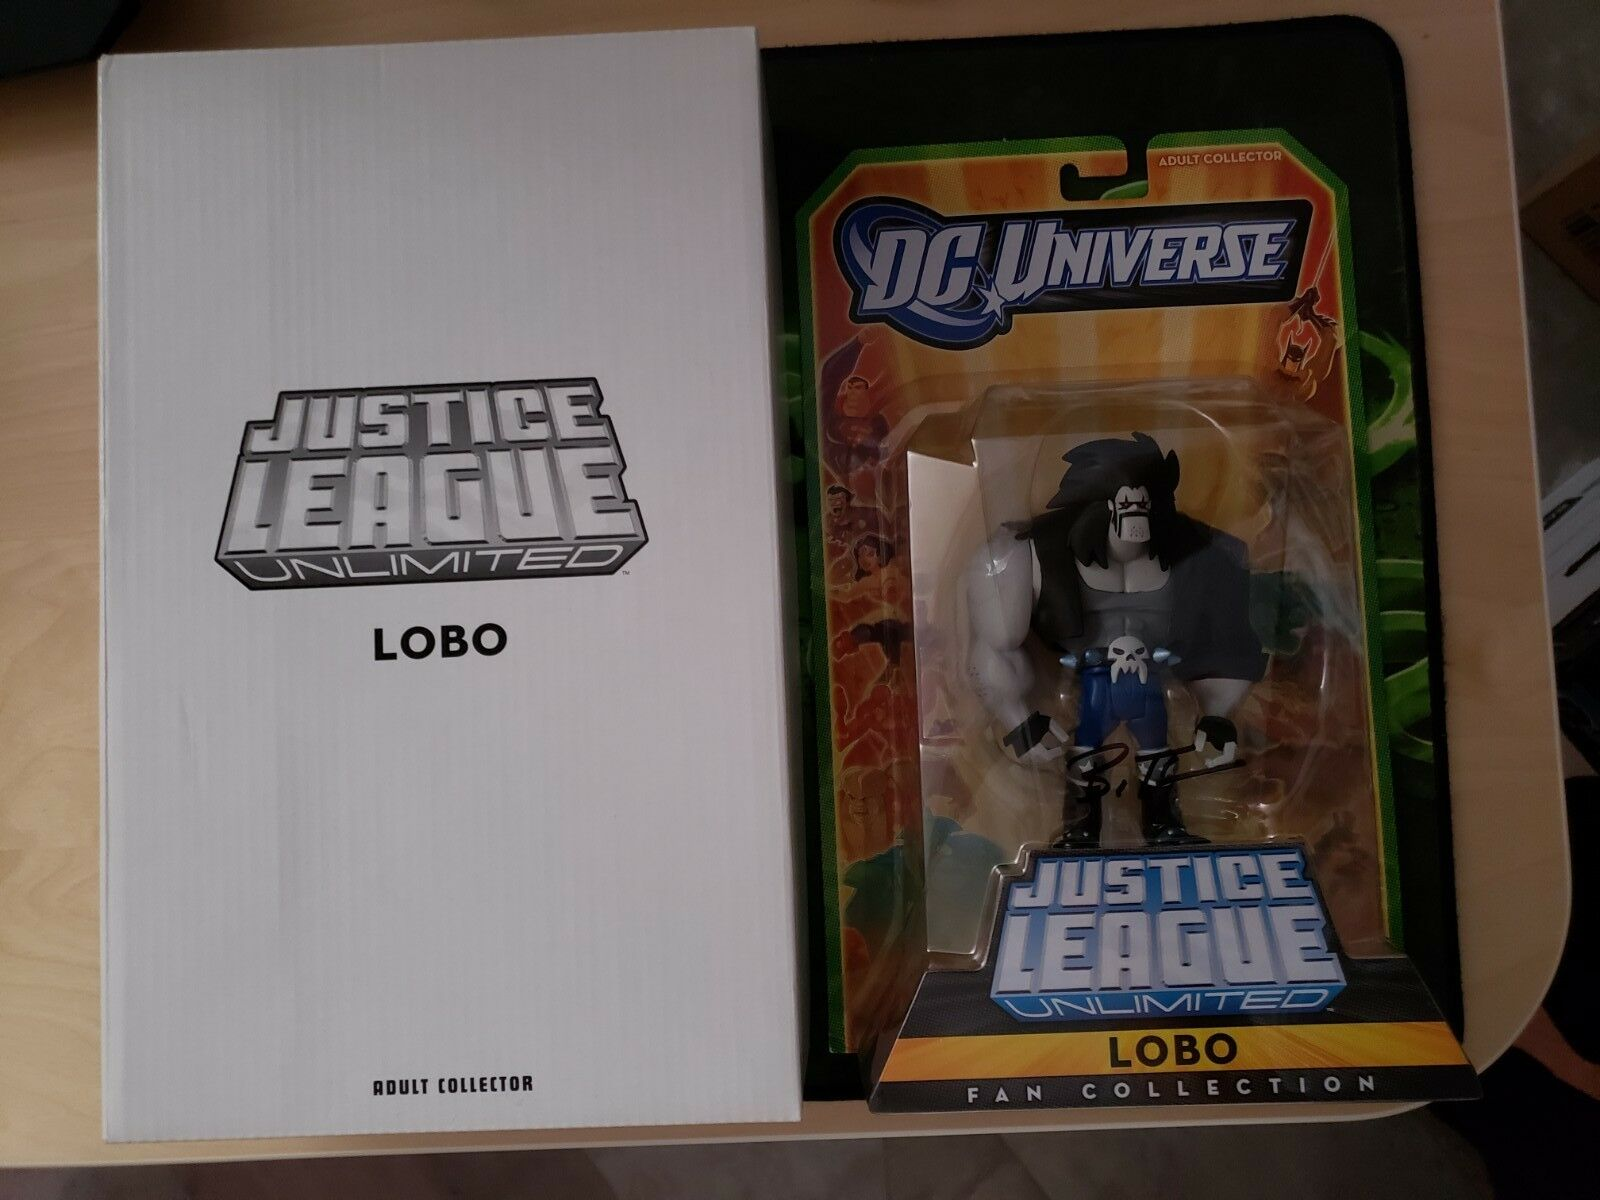 DC Universe Justice League Unlimited SDCC 2010 Exclusive Lobo Signed Bruce Timm